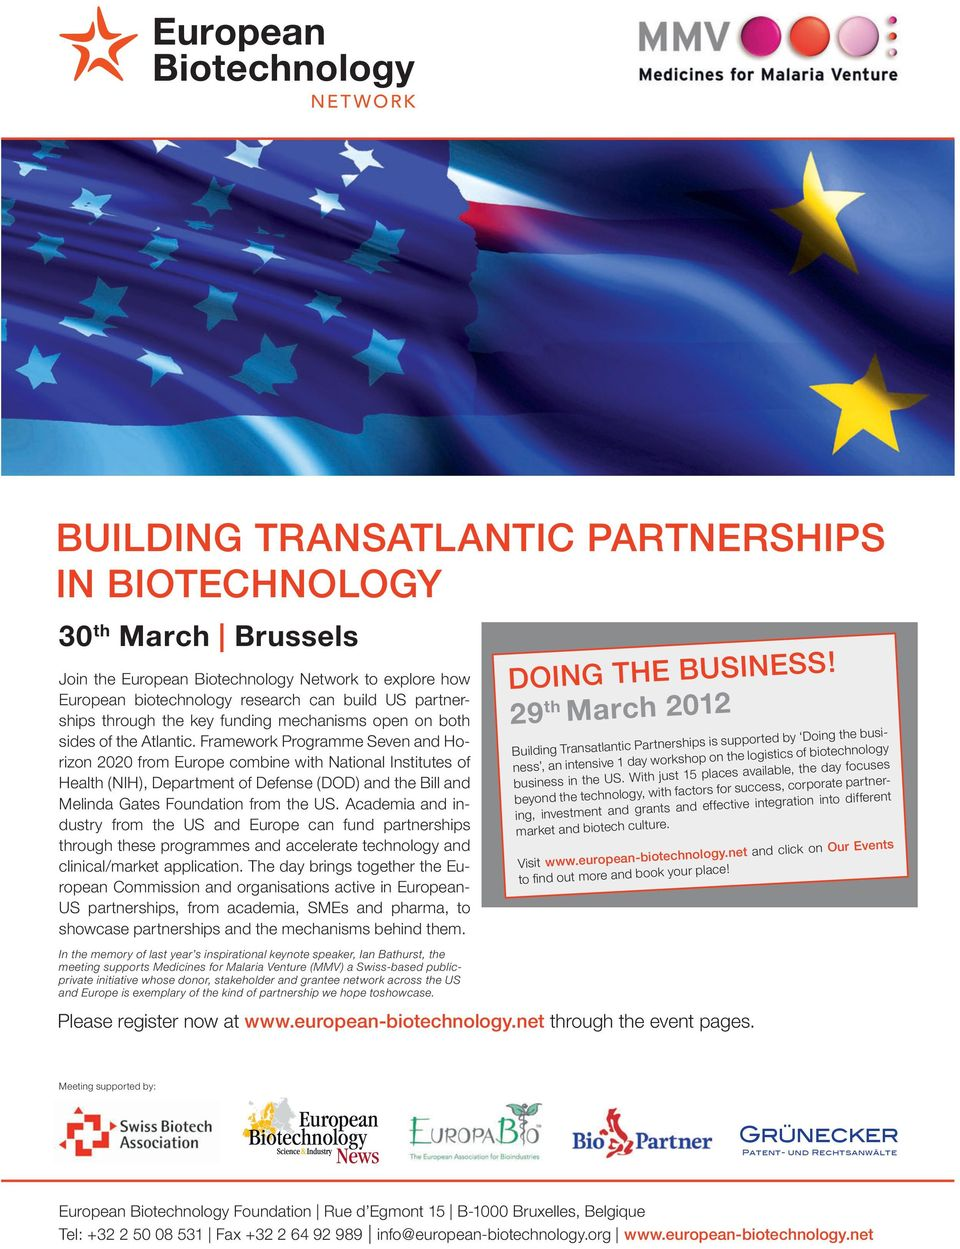 Framework Programme Seven and Horizon 2020 from Europe combine with National Institutes of Health (NIH), Department of Defense (DOD) and the Bill and Melinda Gates Foundation from the US.